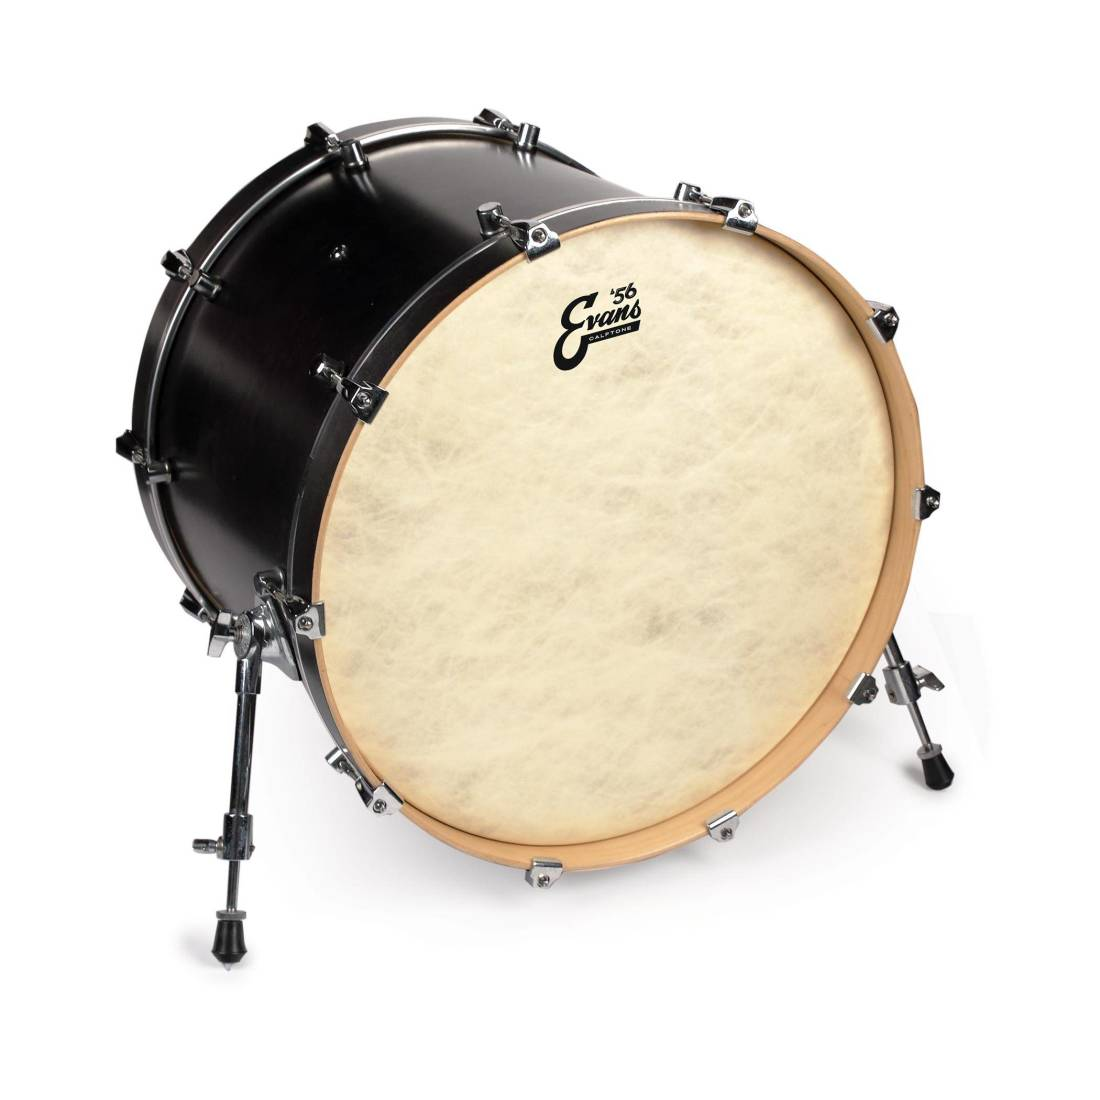 Drum Head Cost : evans calftone bass drum head 24 inch long mcquade musical instruments ~ Russianpoet.info Haus und Dekorationen